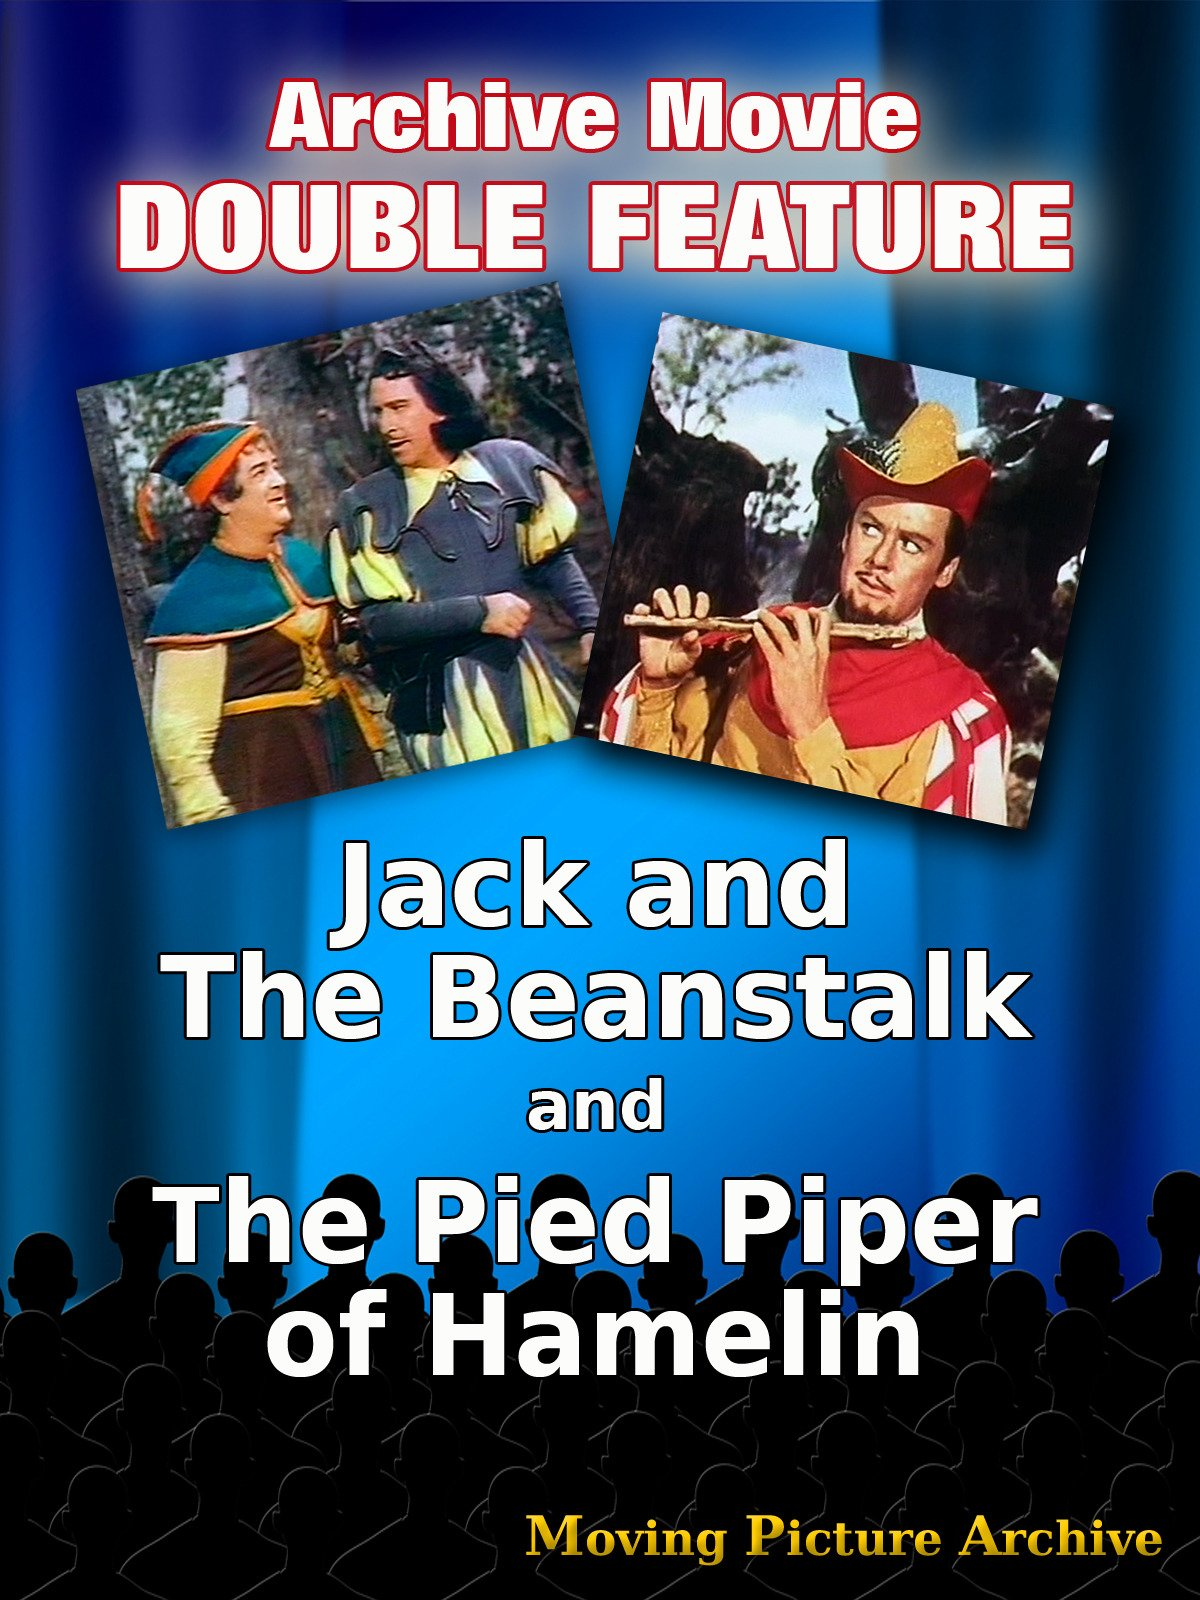 Archive Movie Double Feature - Jack And The Beanstalk & The Pied Piper Of Hamelin